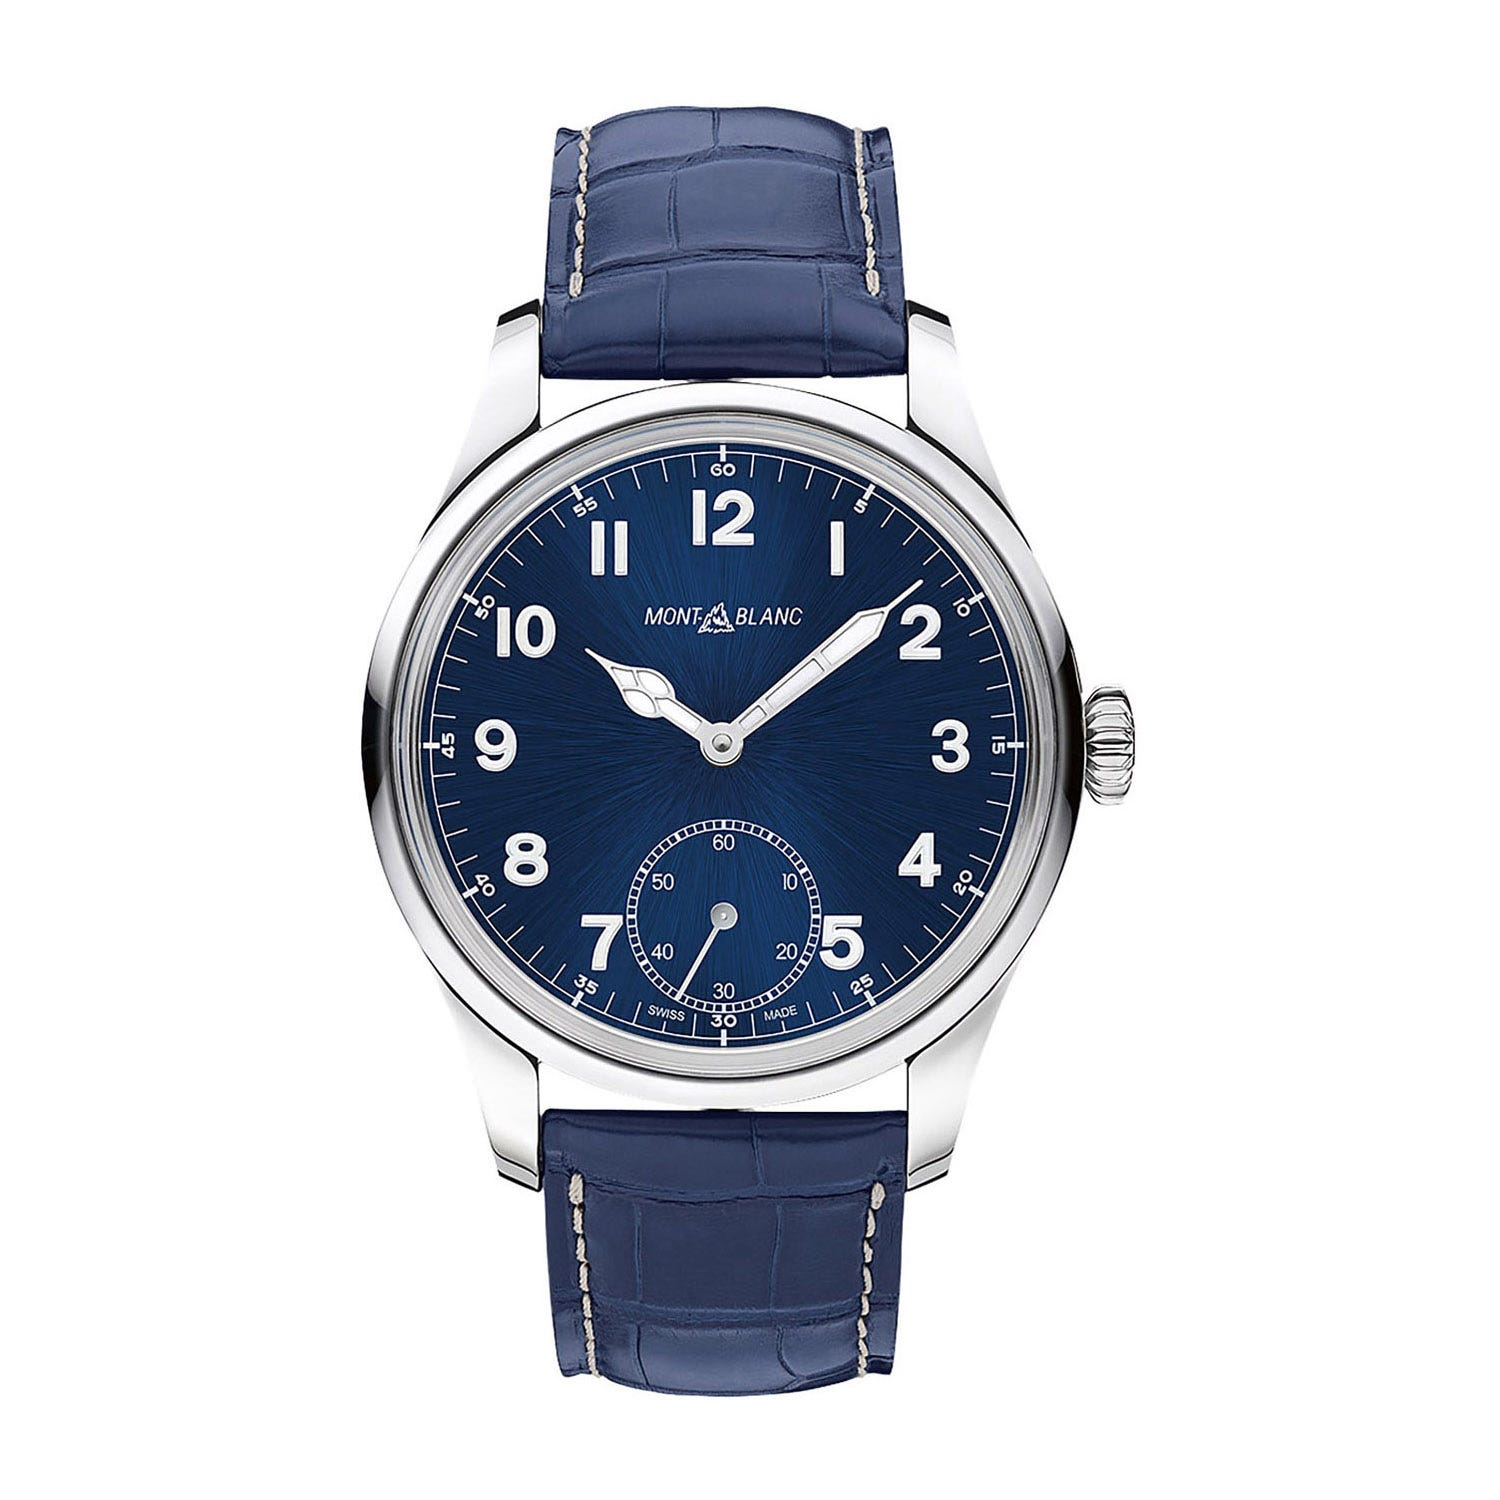 Montblanc 1858 Small Seconds Automatic men's blue leather strap watch